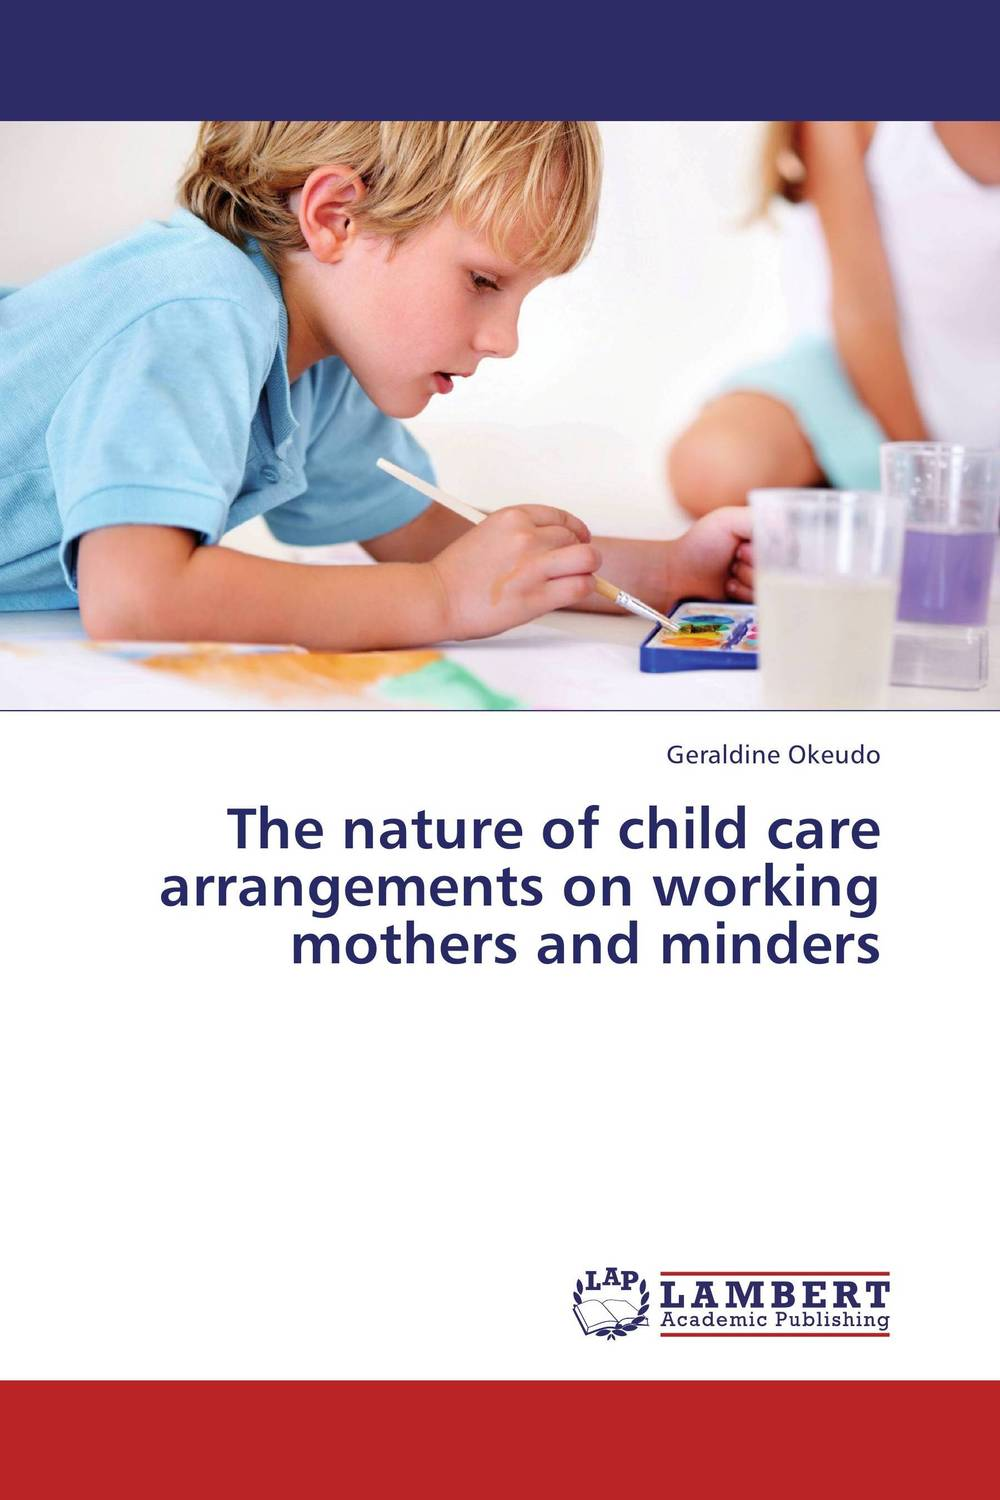 The nature  of child care arrangements on working mothers and minders